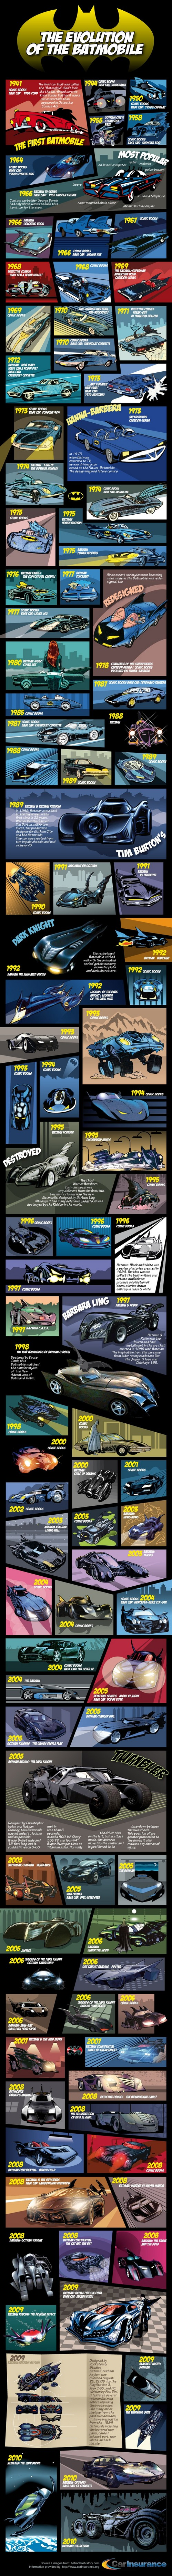 An Illustrated History of the Batmobile (via Ebert)